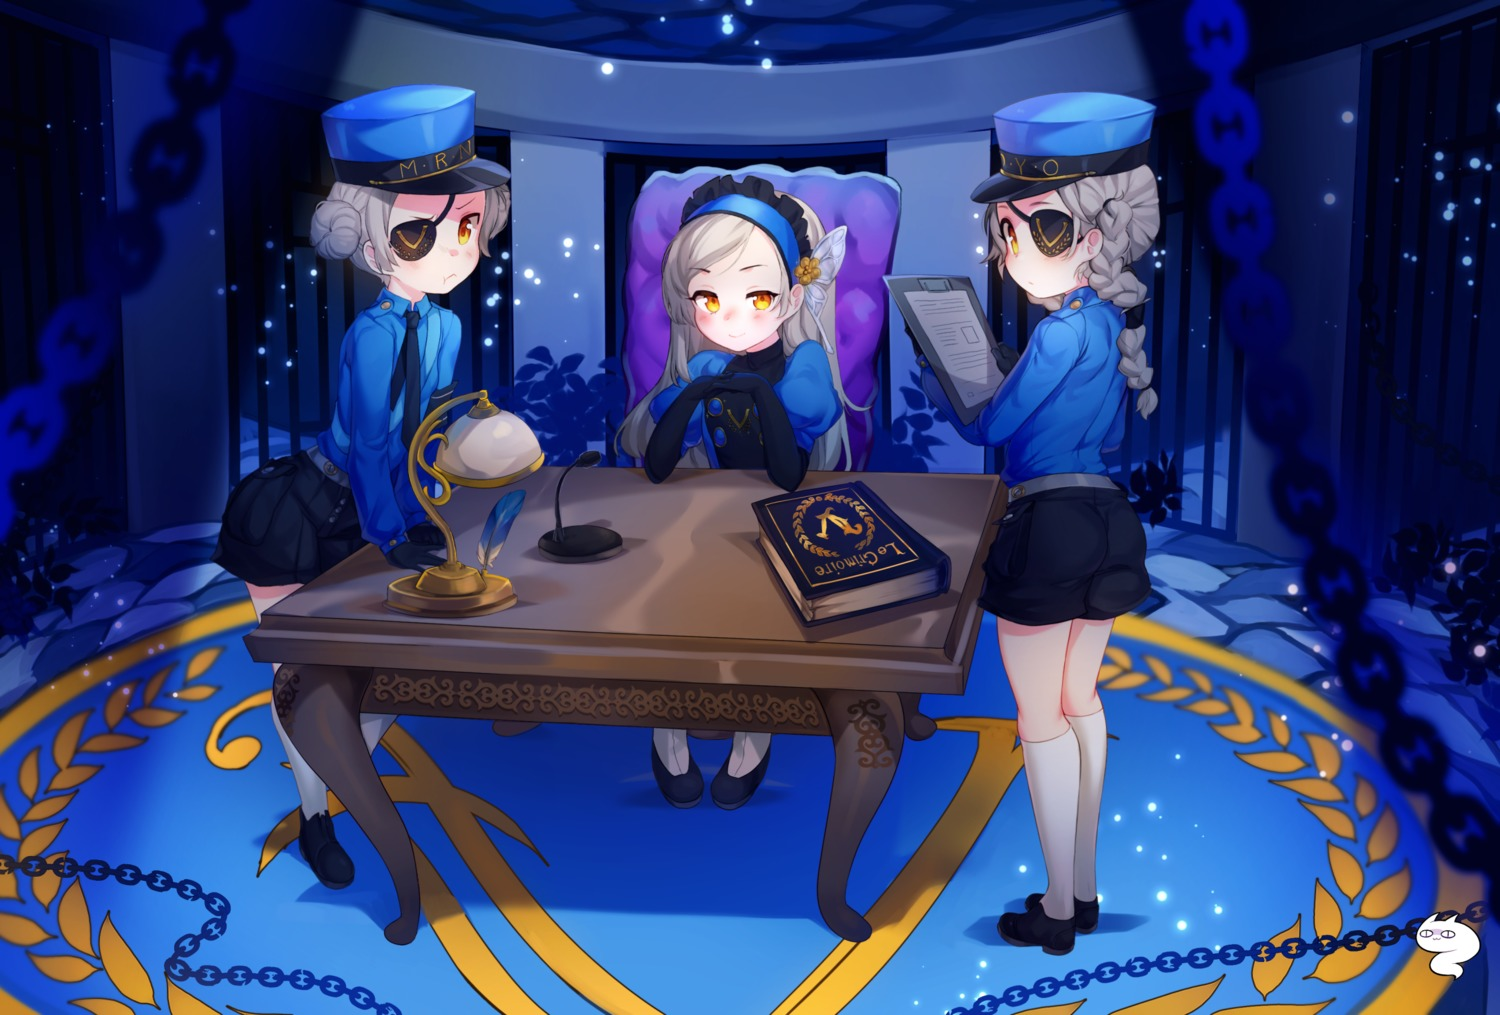 3girls black_gloves blush book braid caroline_(persona_5) chain chair desk double_bun elbow_gloves eyepatch flat_chest gloves hair_bun hairband hat headband highres justine_(persona_5) lavenza long_hair long_sleeves looking_at_viewer lounge_chair microphone multiple_girls necktie persona persona_5 proofmeh siblings sisters smile twin_braids twins yellow_eyes